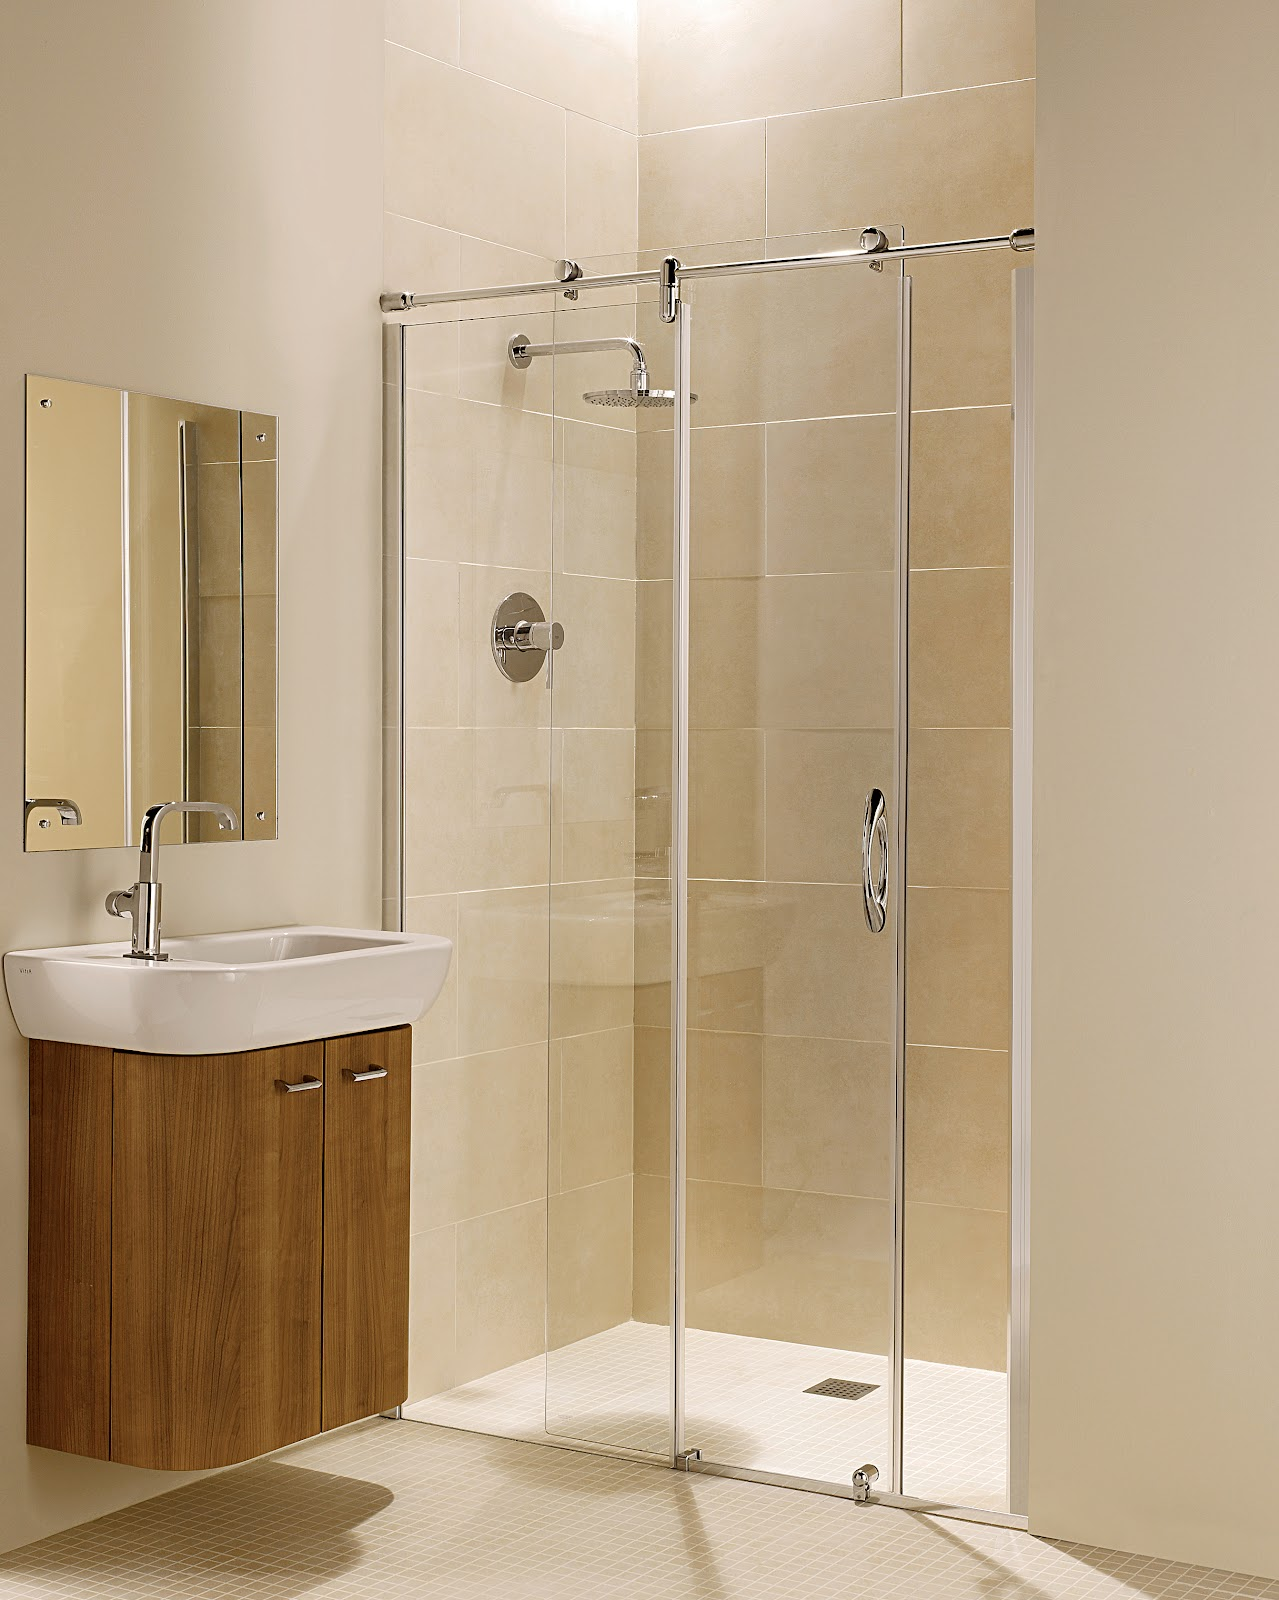 The wetroom specialst blog details on installing a wetroom and the new product releases from